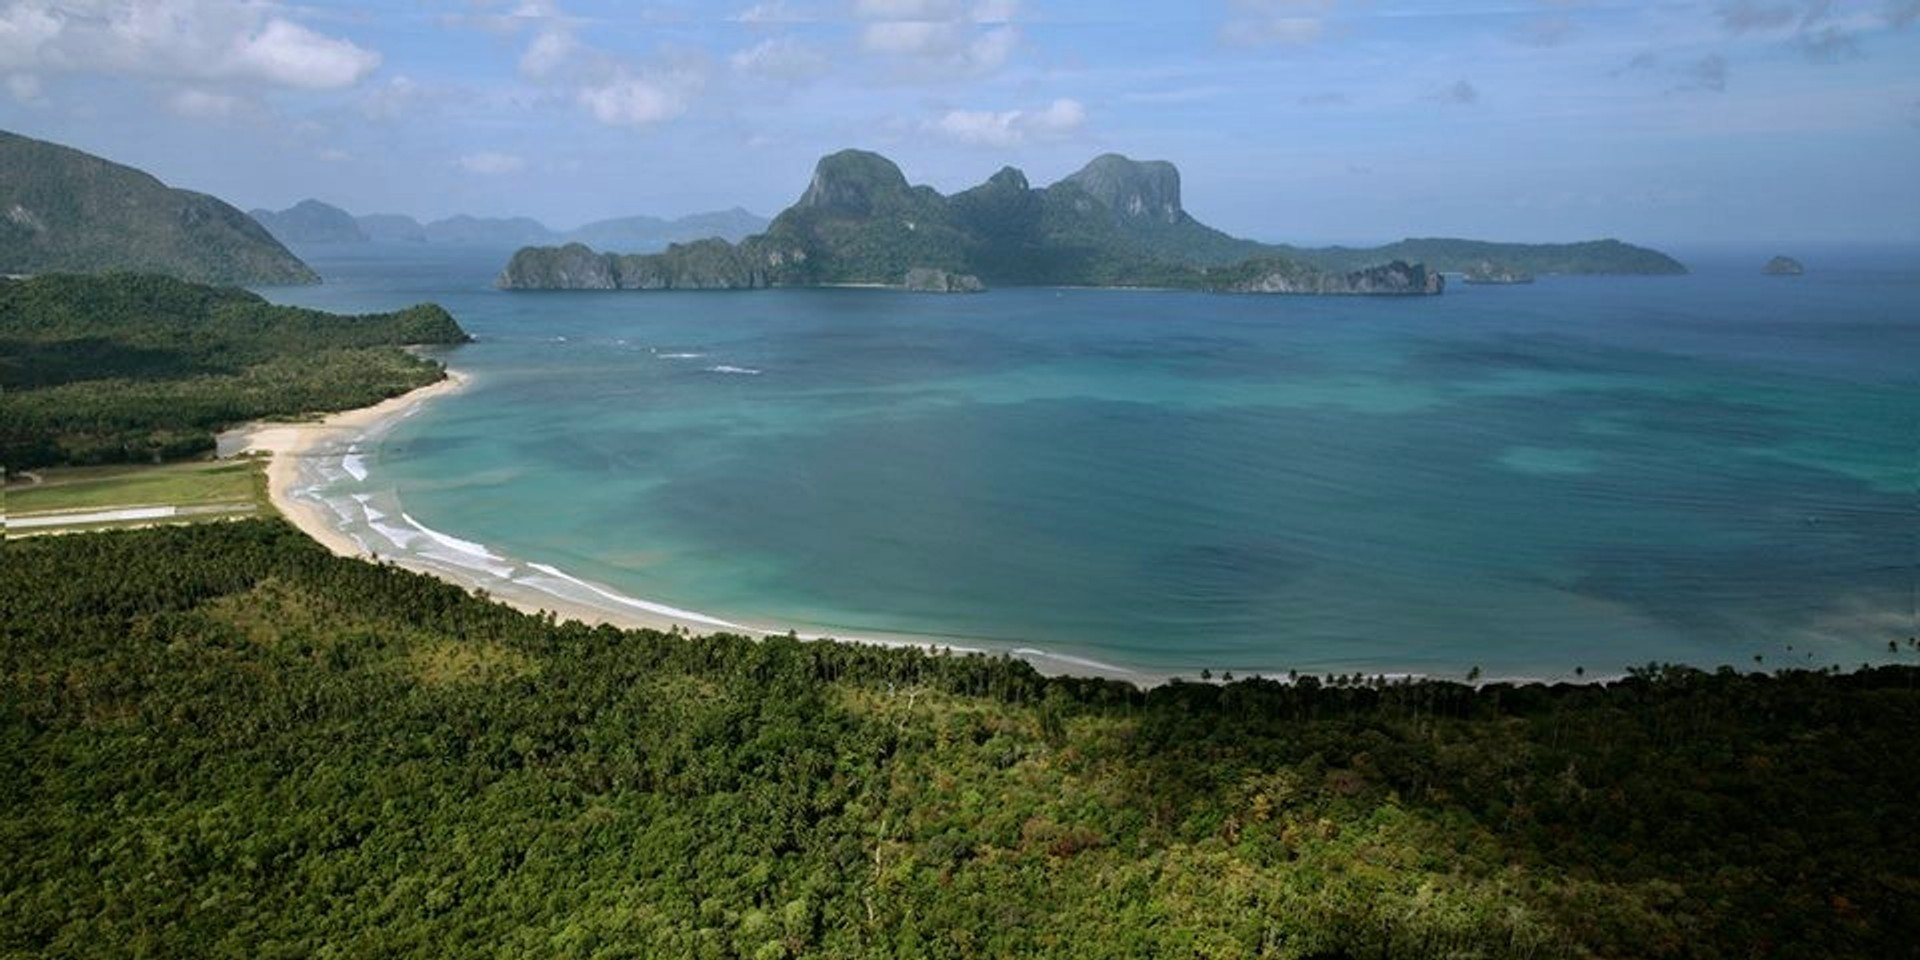 El Nido is set to be your next music festival destination with Lio Beach Festival